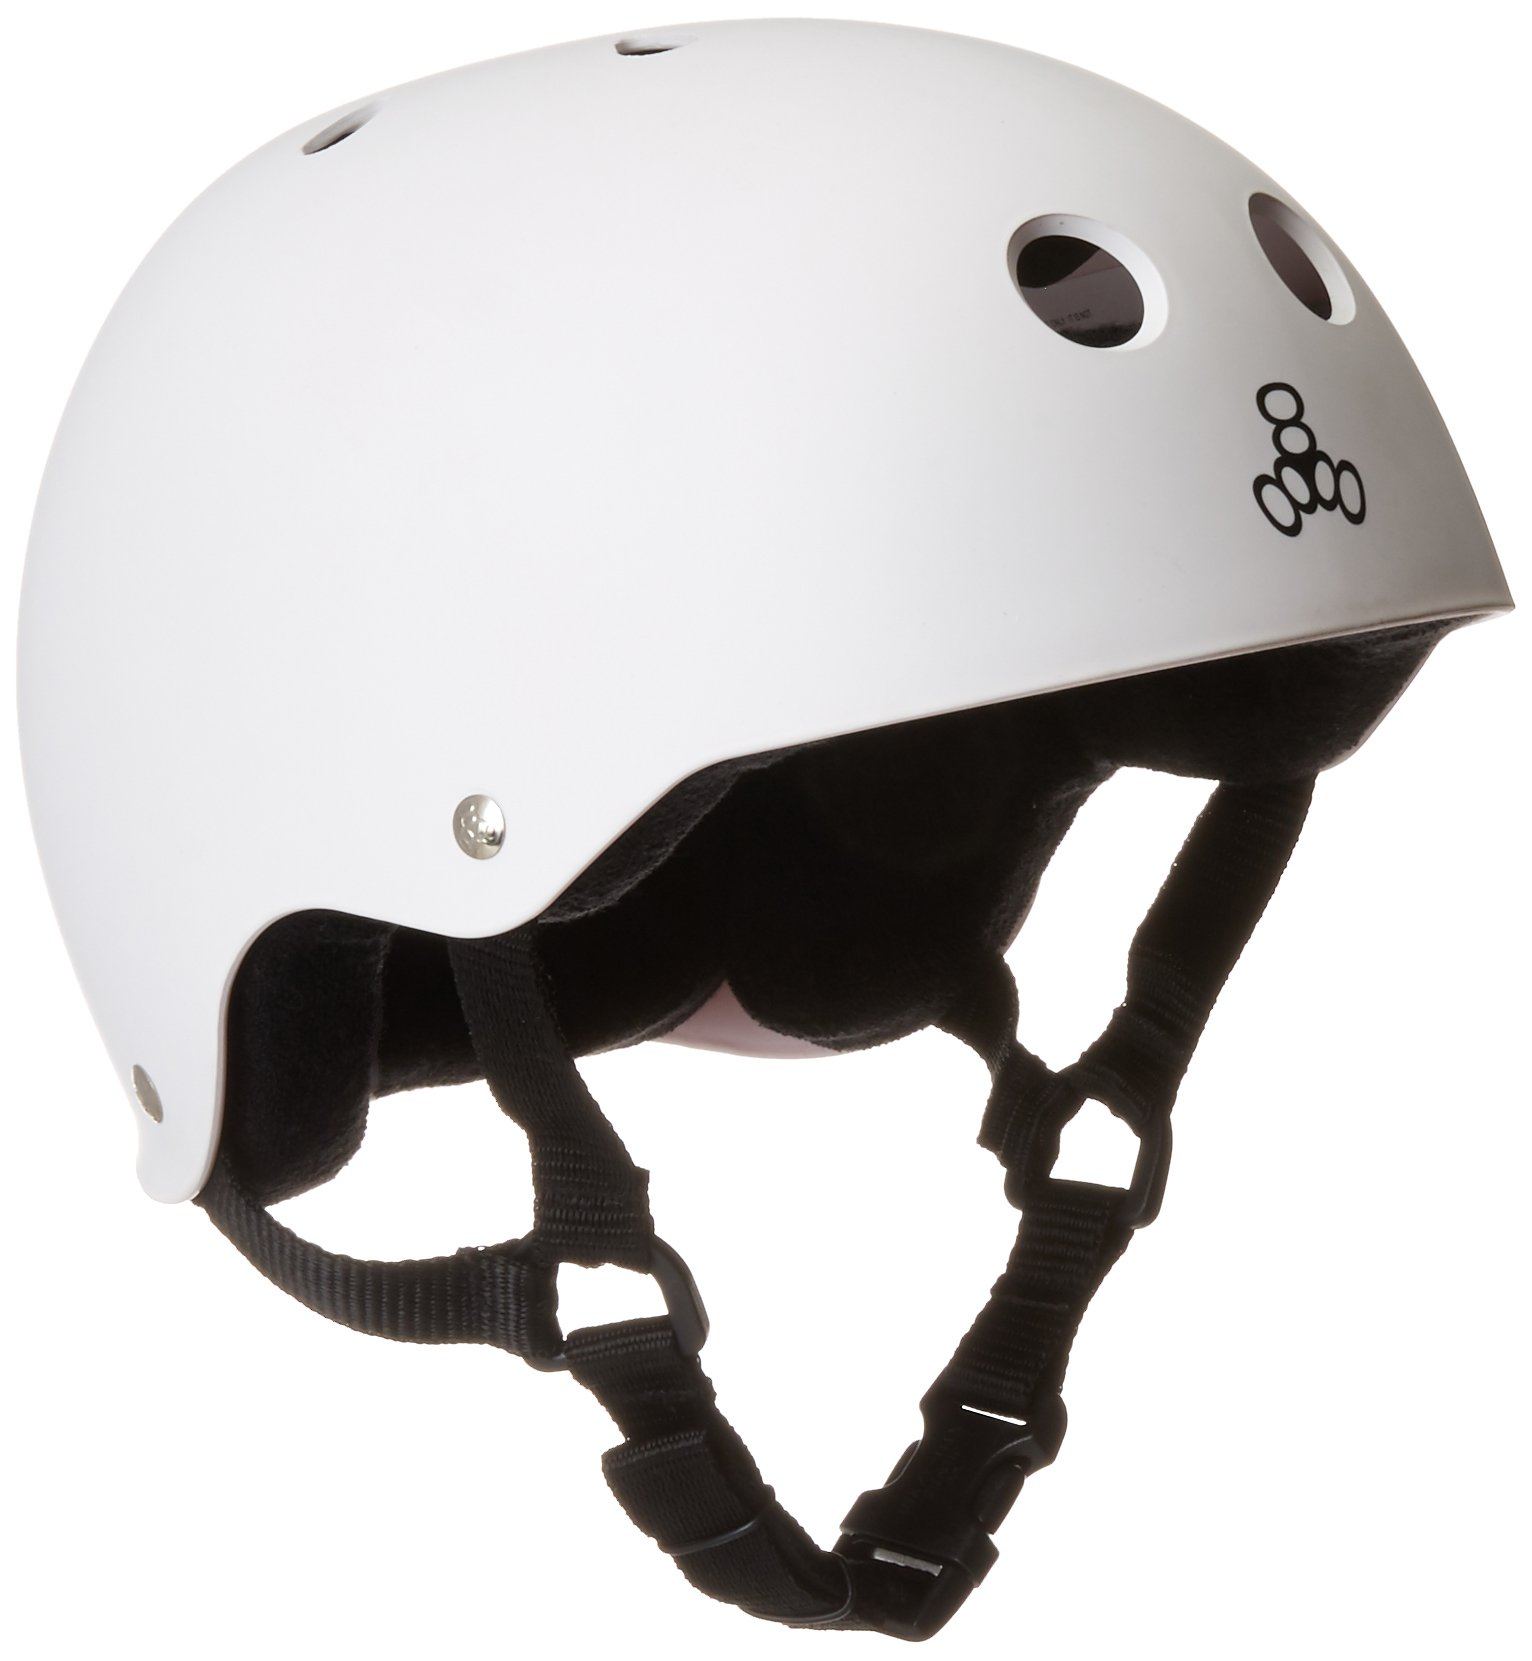 Triple Eight Helmet with Sweatsaver Liner (White Rubber, Medium)